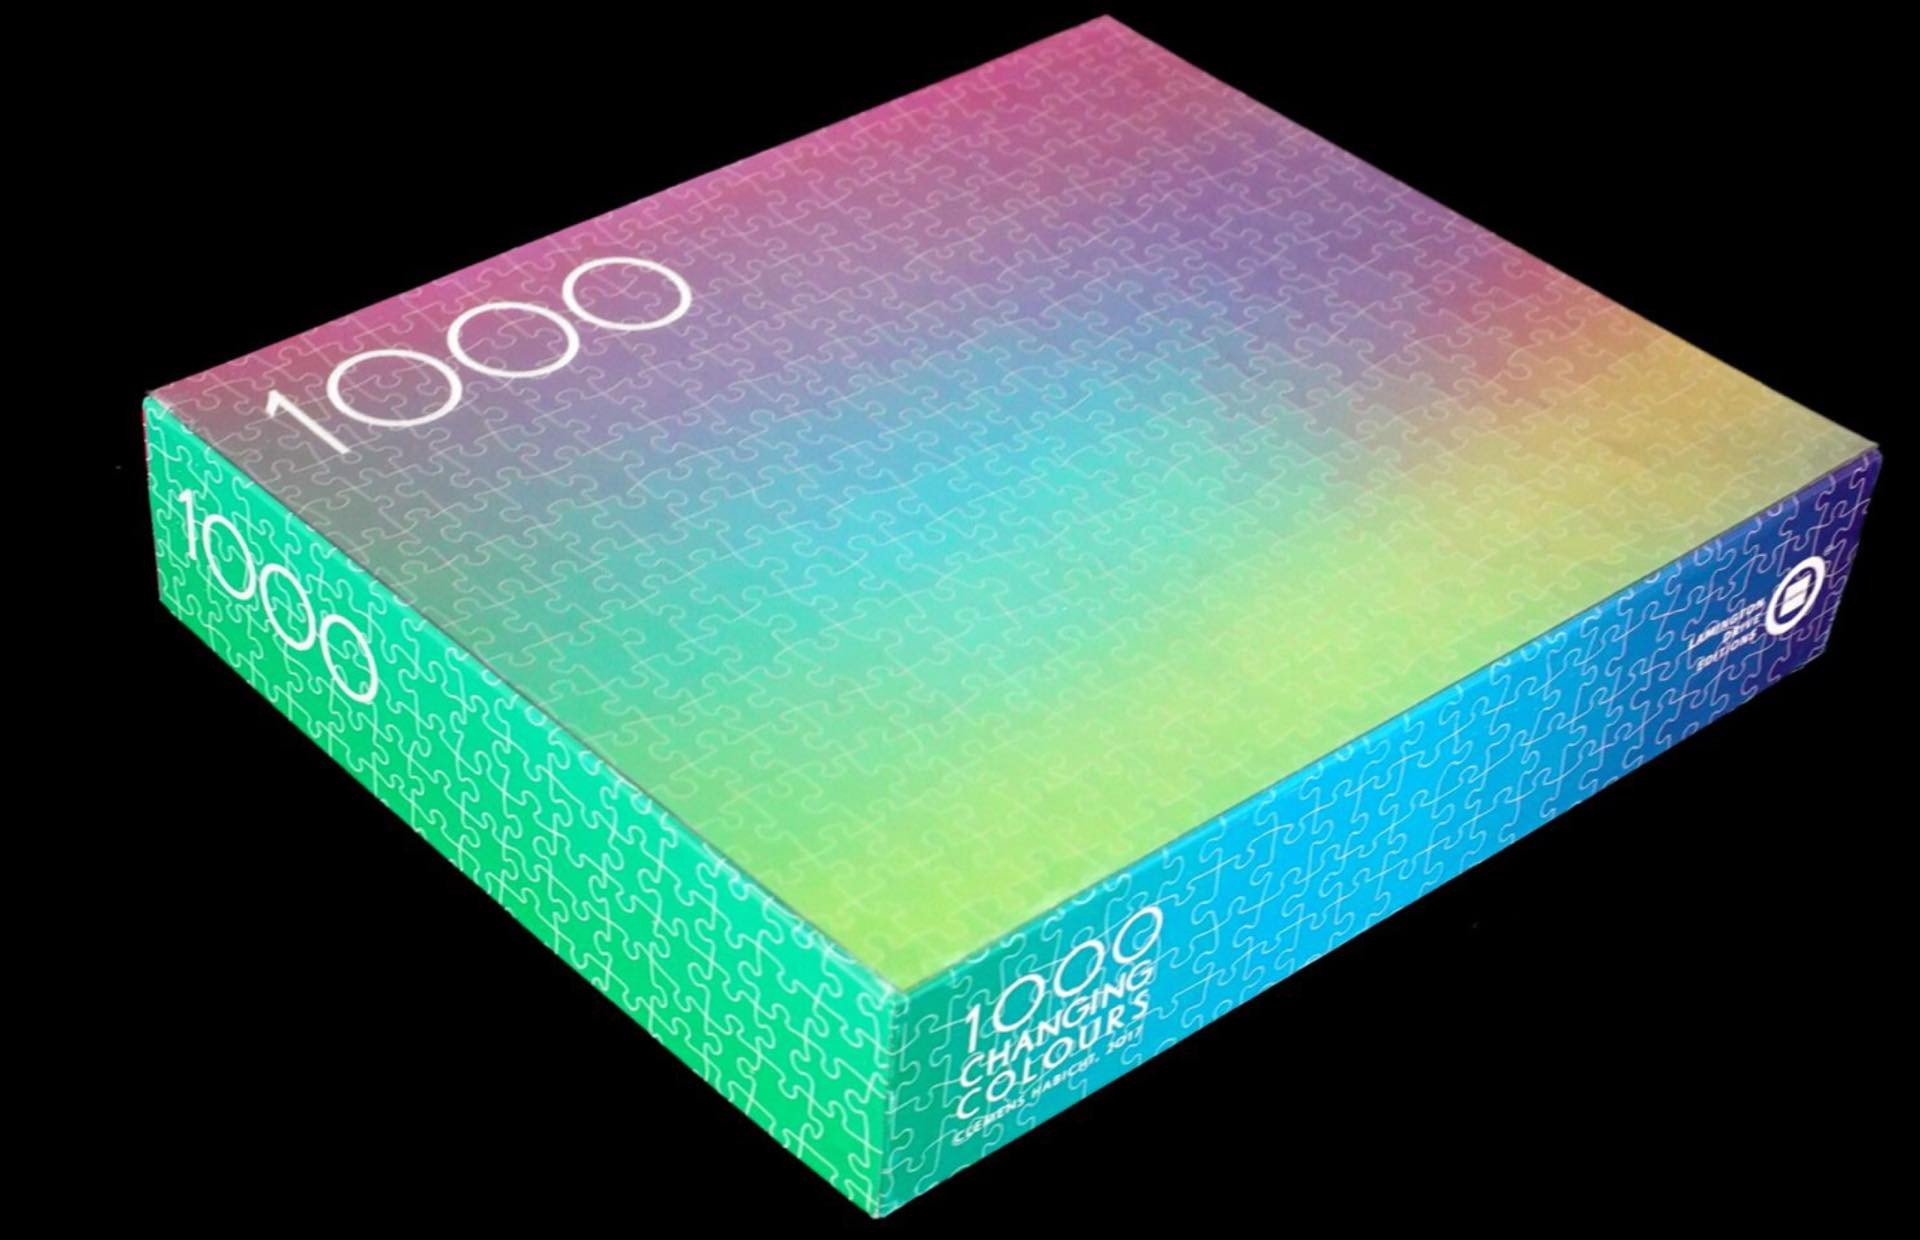 Clemens Habicht's 1000 Changing Colors jigsaw puzzle. ($89)